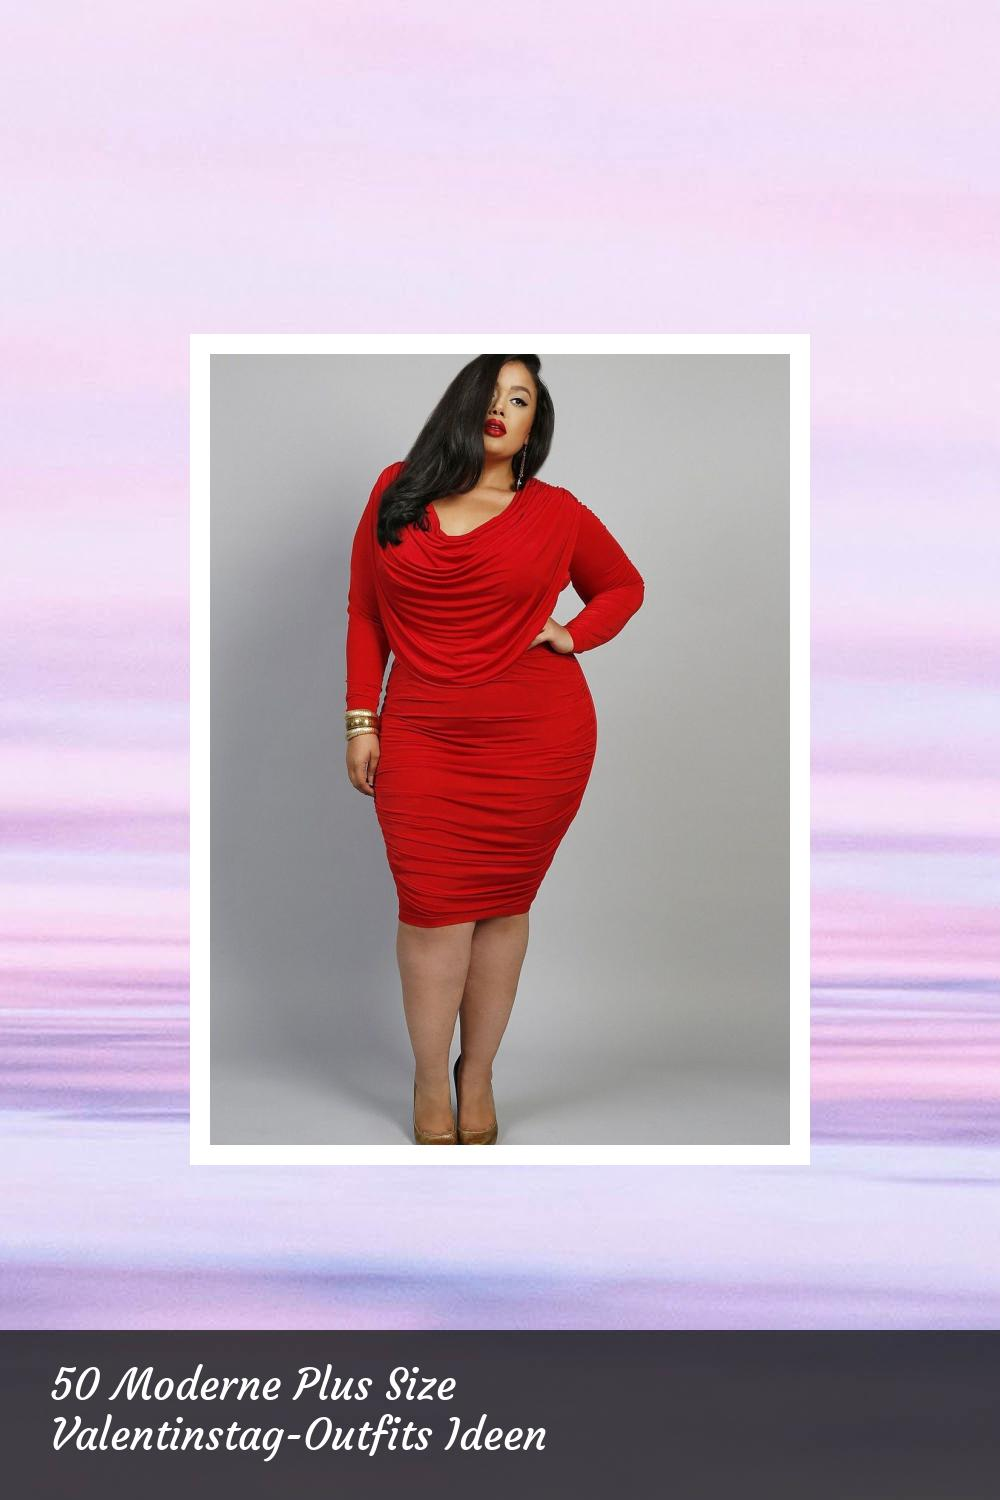 50 Moderne Plus Size Valentinstag-Outfits Ideen 31